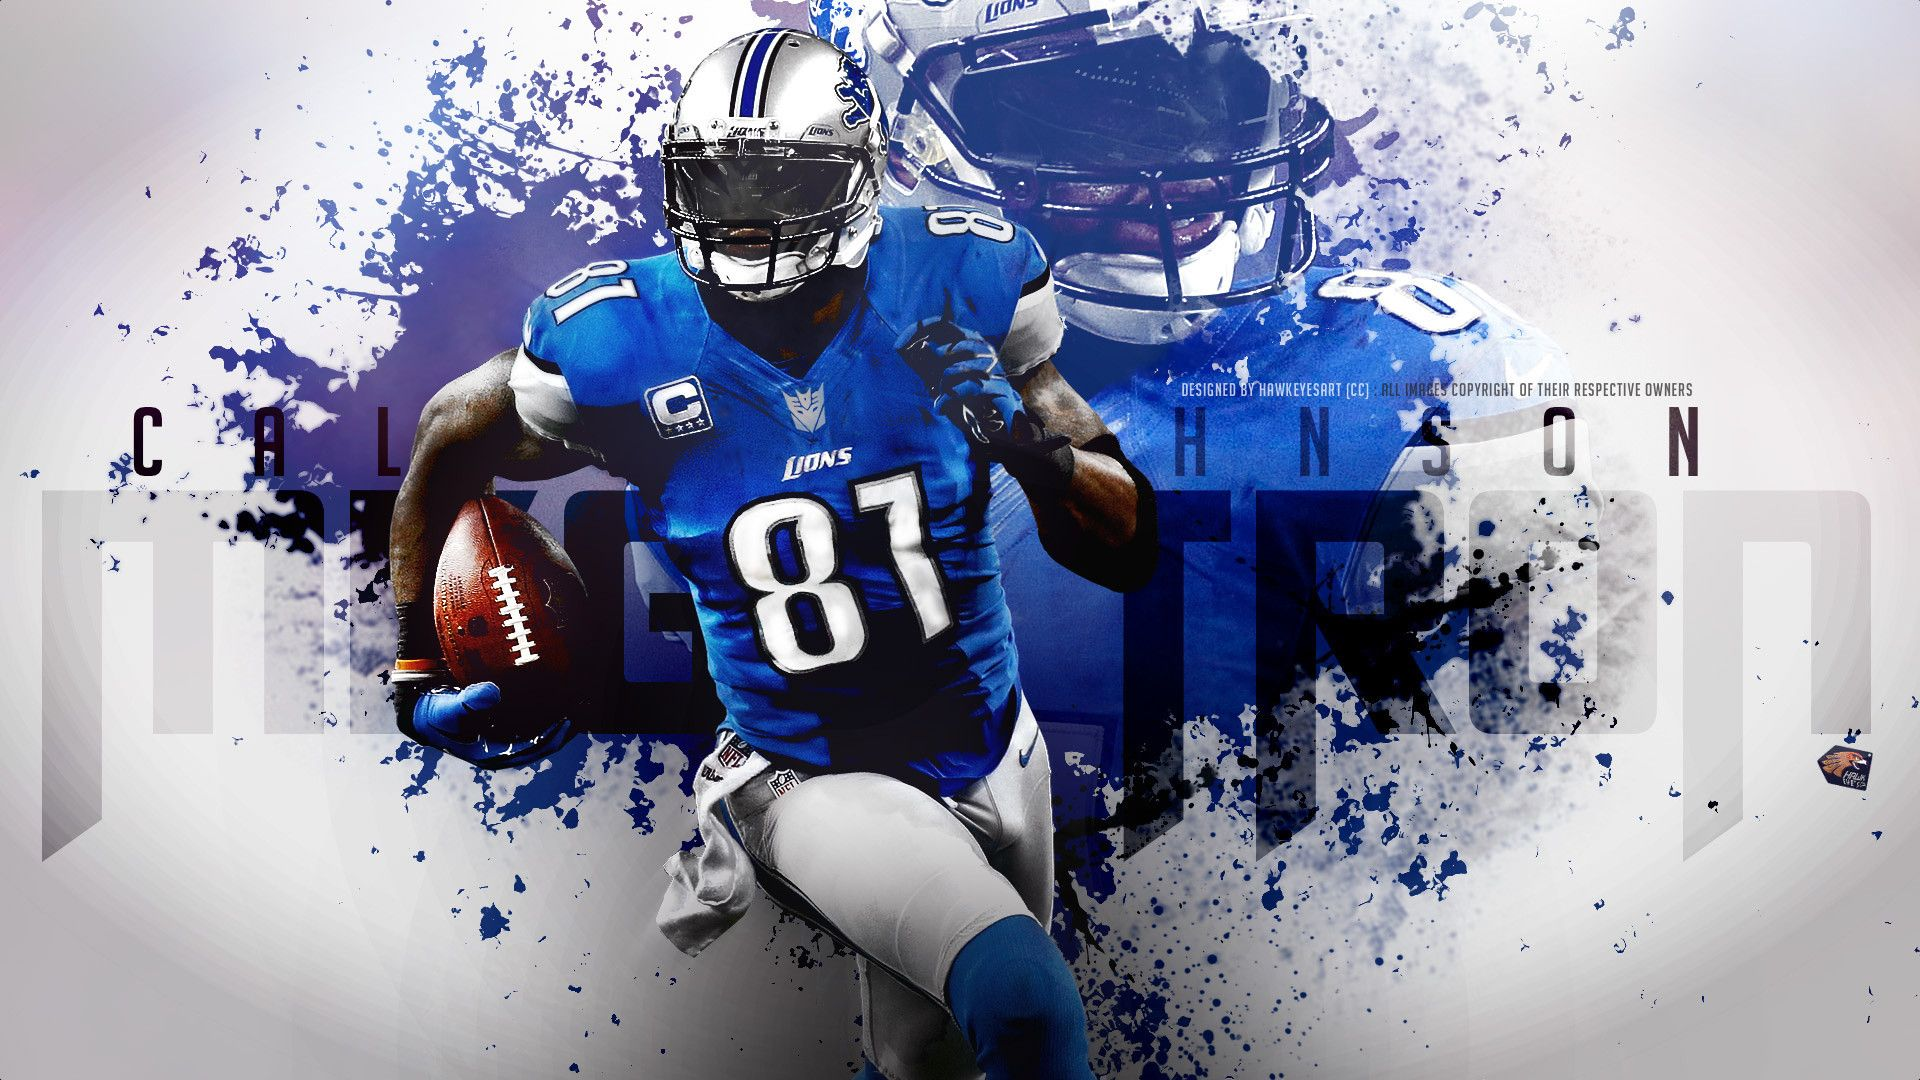 1920x1080 Nfl Football Players Wallpapers Nfl Football Wallpaper Football Wallpaper Calvin Johnson